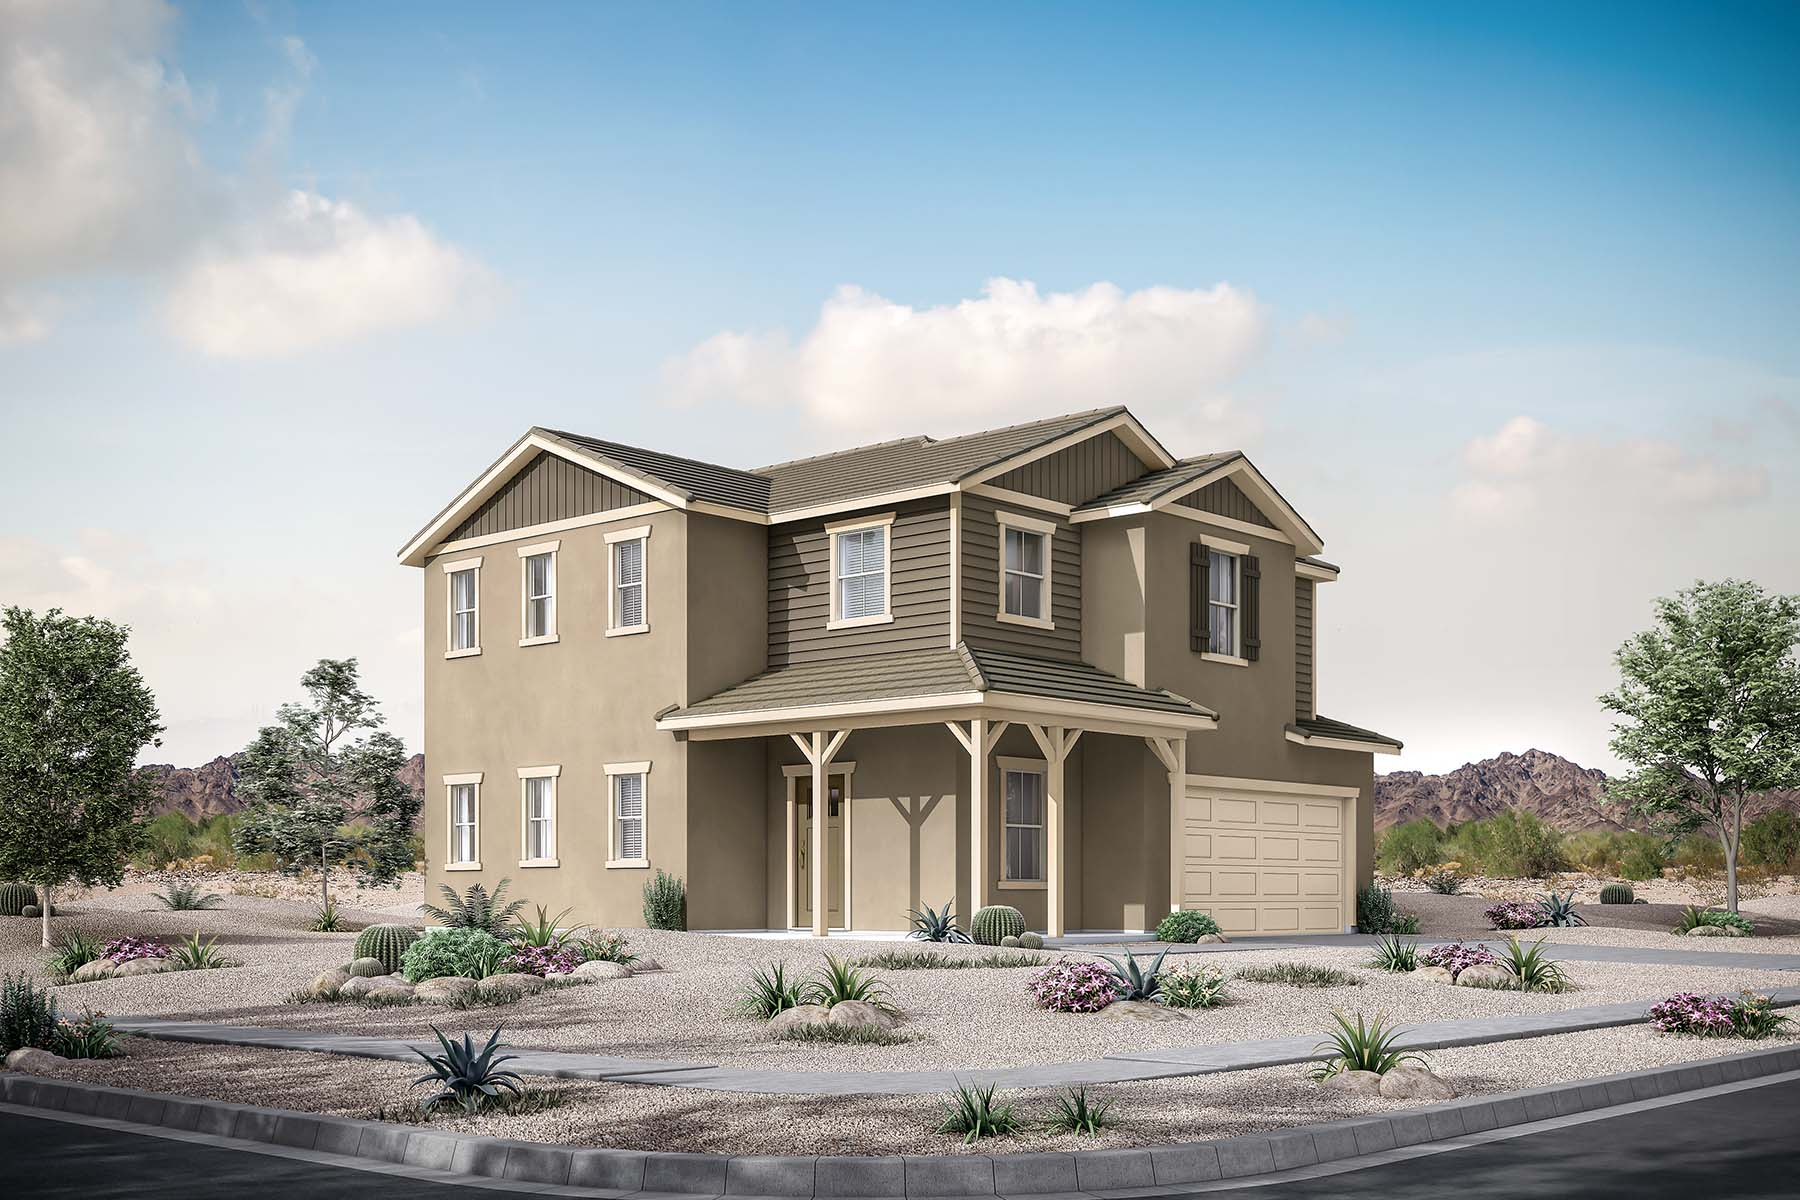 Broadmore Plan  at Roosevelt Park in Avondale Arizona by Mattamy Homes